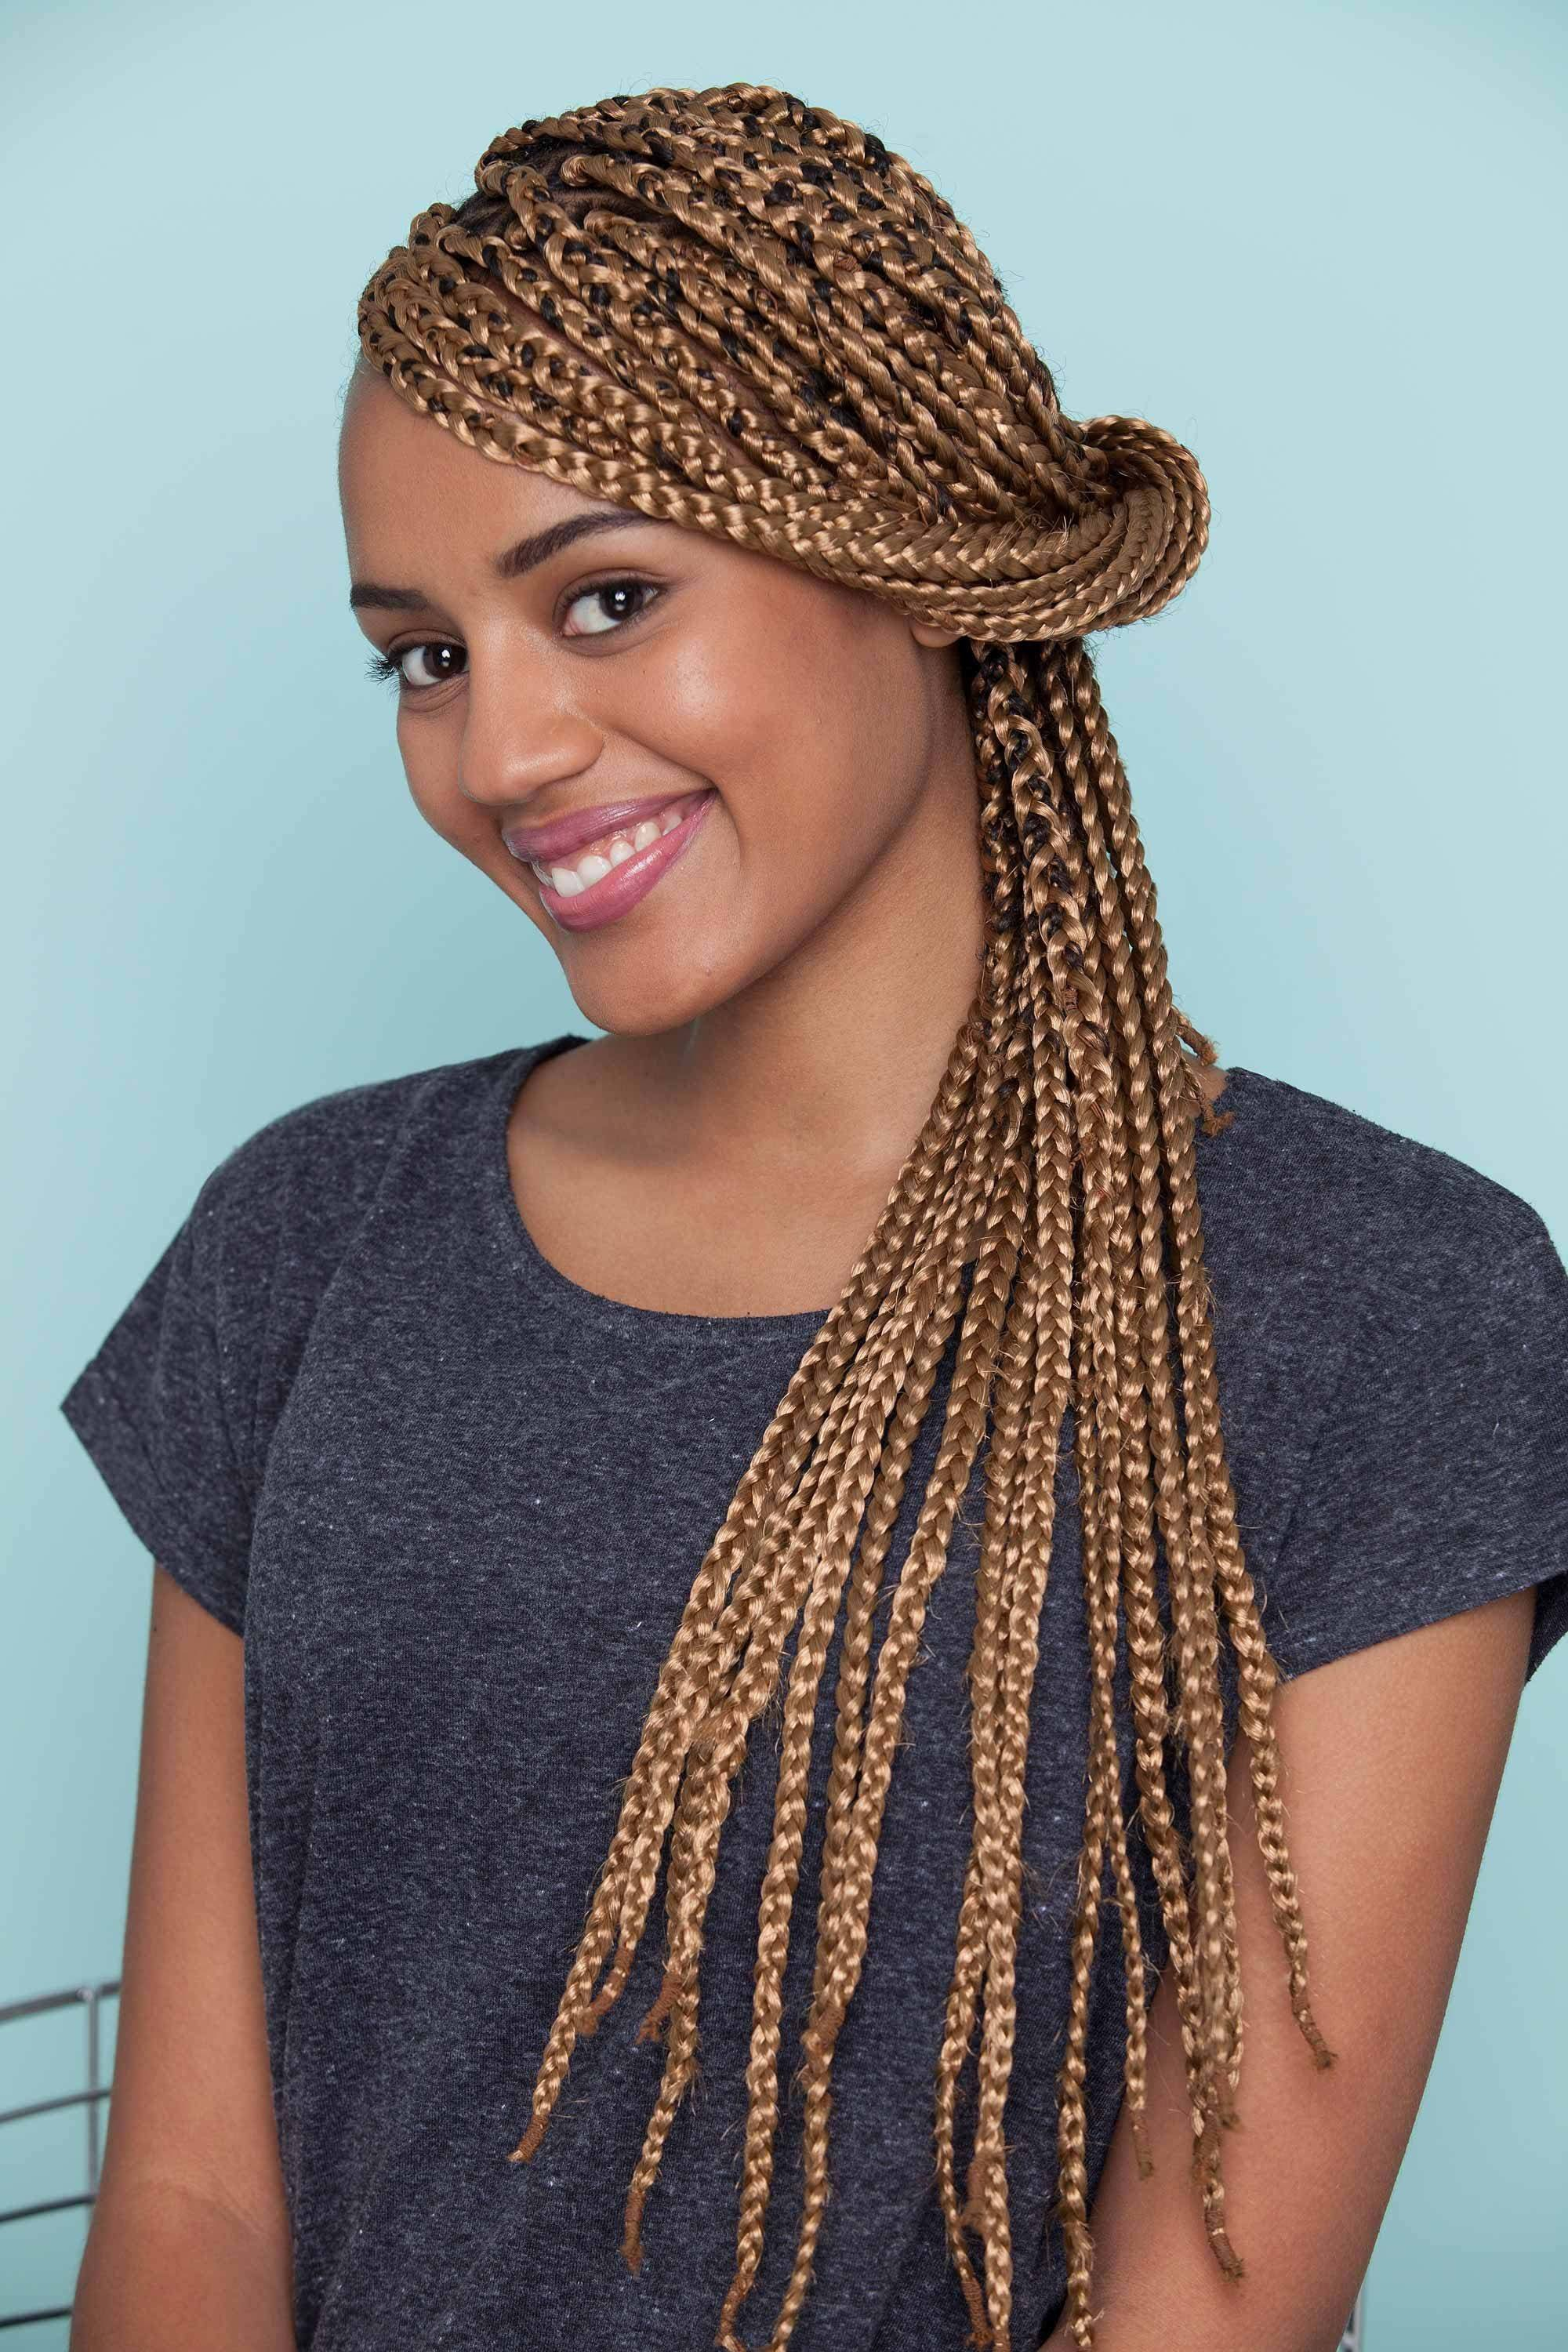 Coloured Braids 24 Box Braids Plaited Styles With Trendy Hues